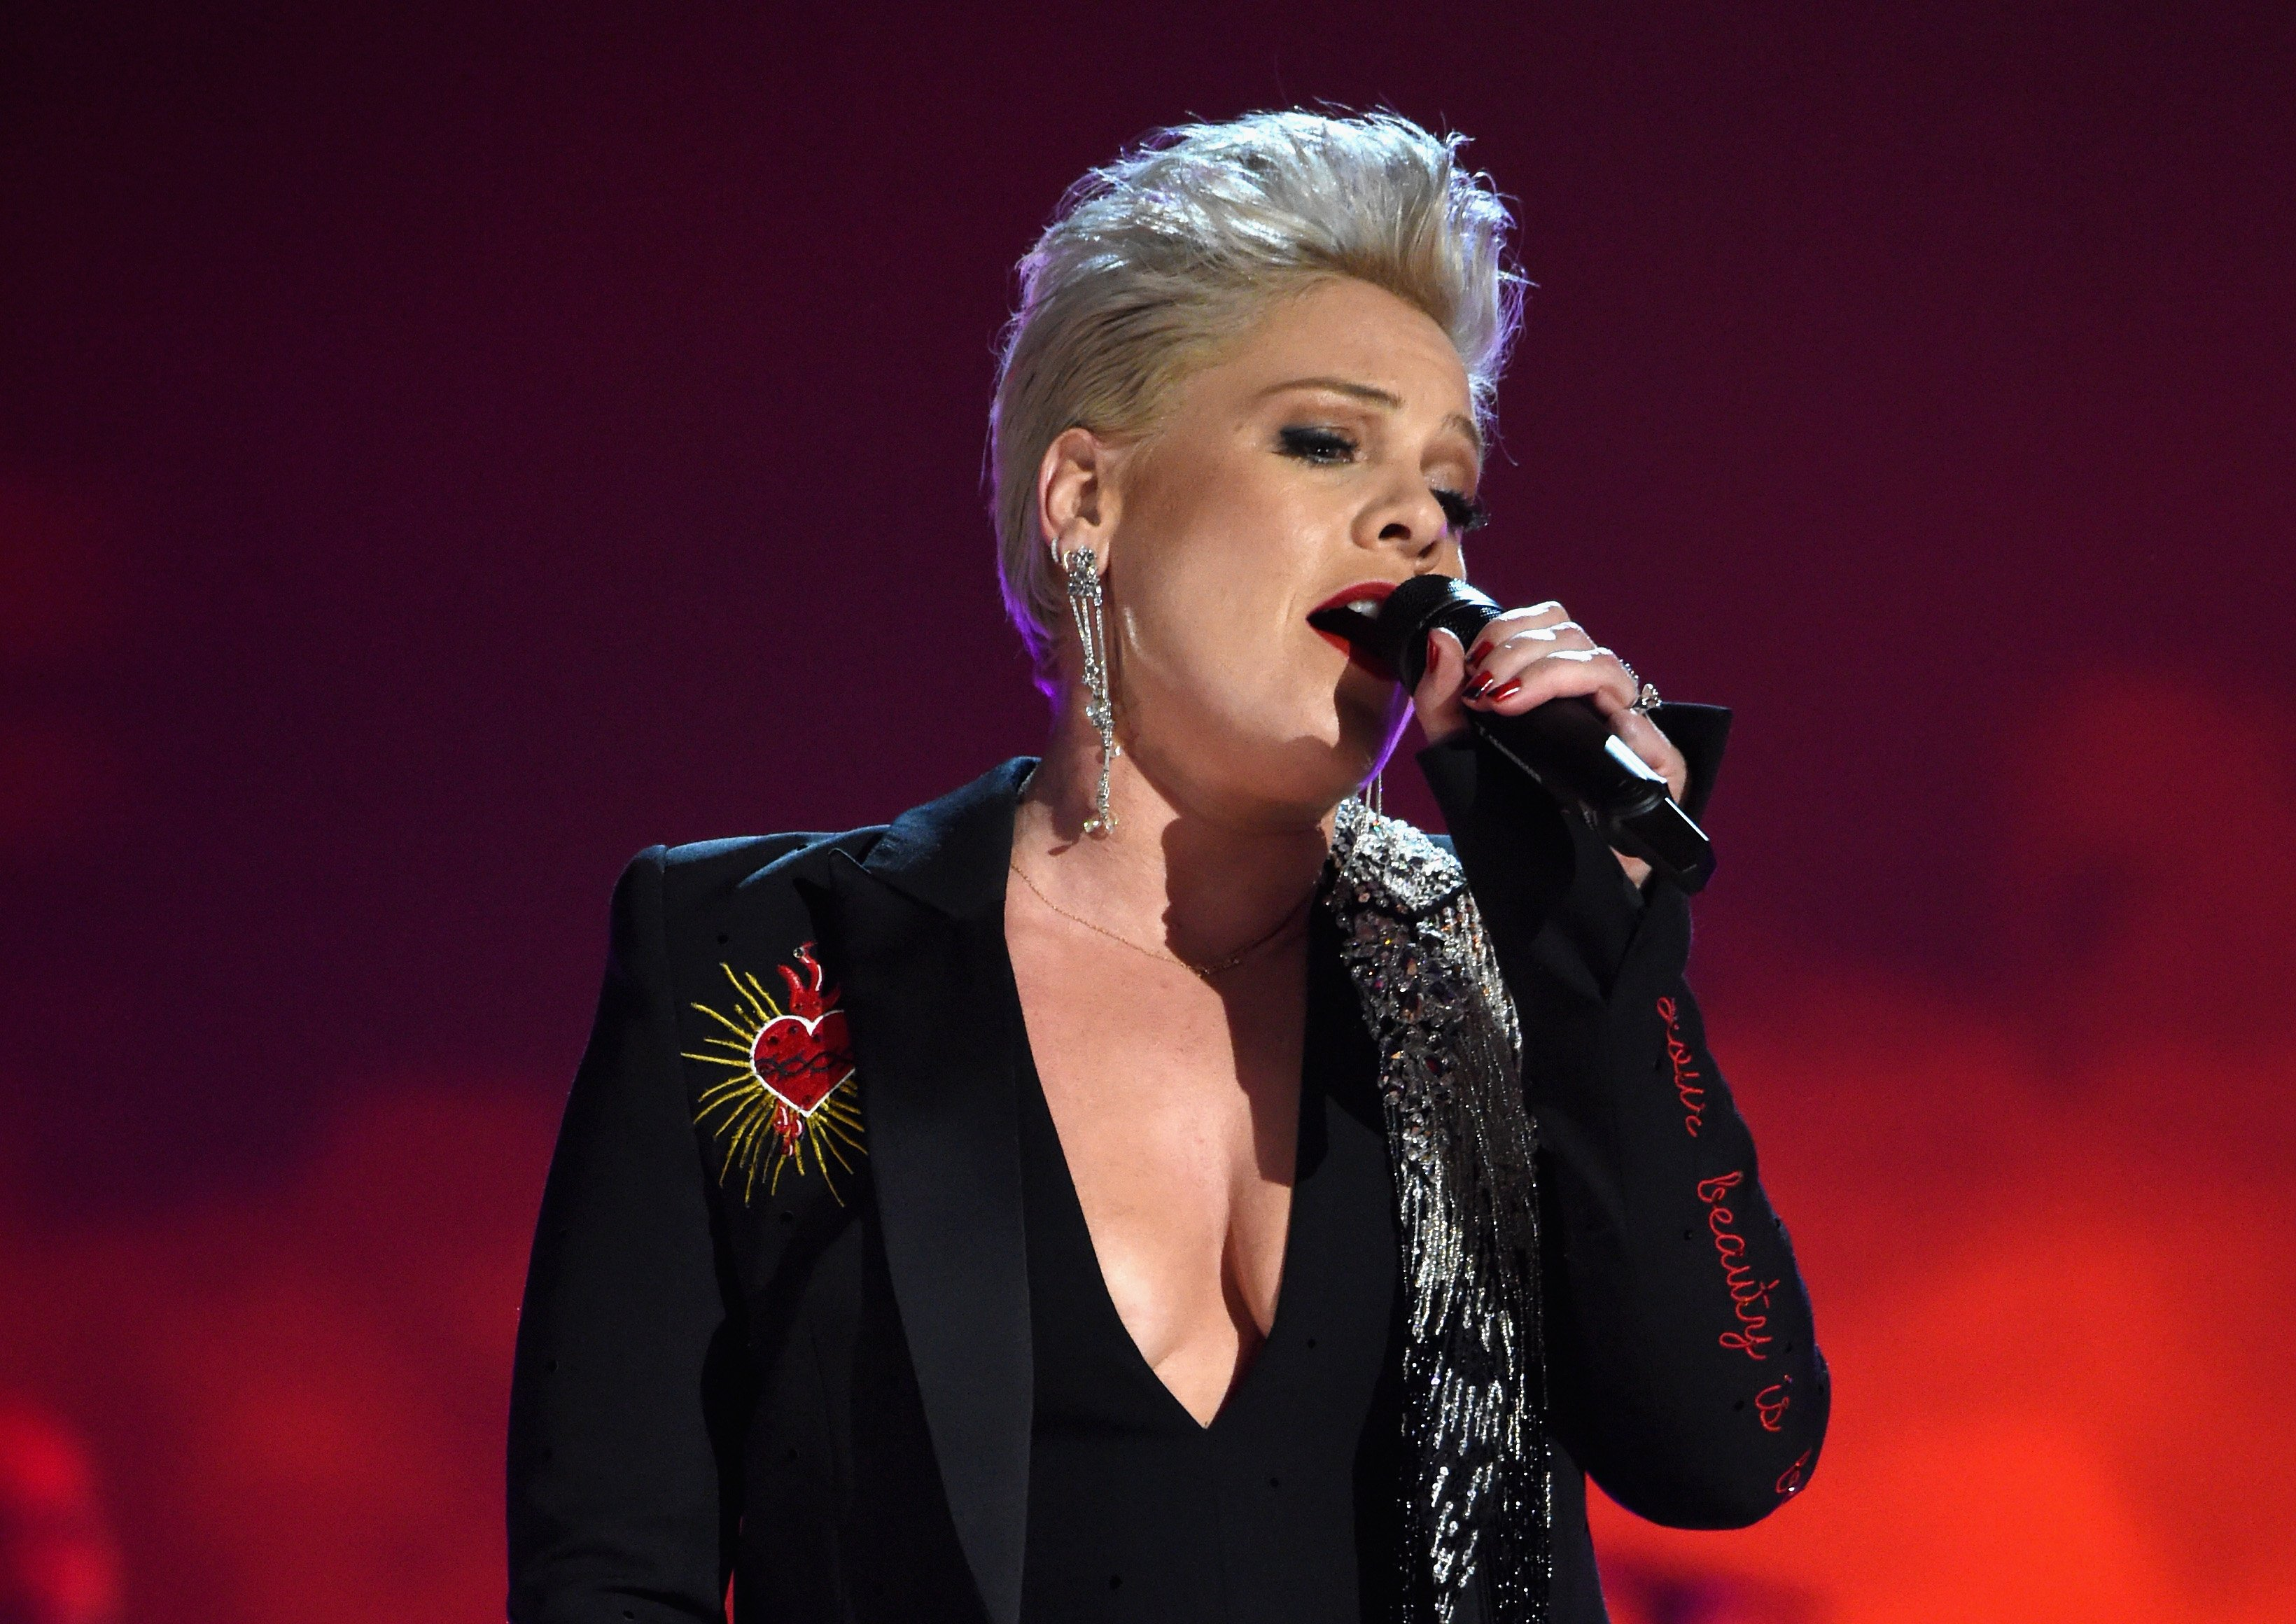 """Pink sings """"Jolene"""" as a tribute to country music icon Dolly Parton at the 2019 MusiCares Person of the Year event in Los Angeles, California.   Photo: Getty Images"""